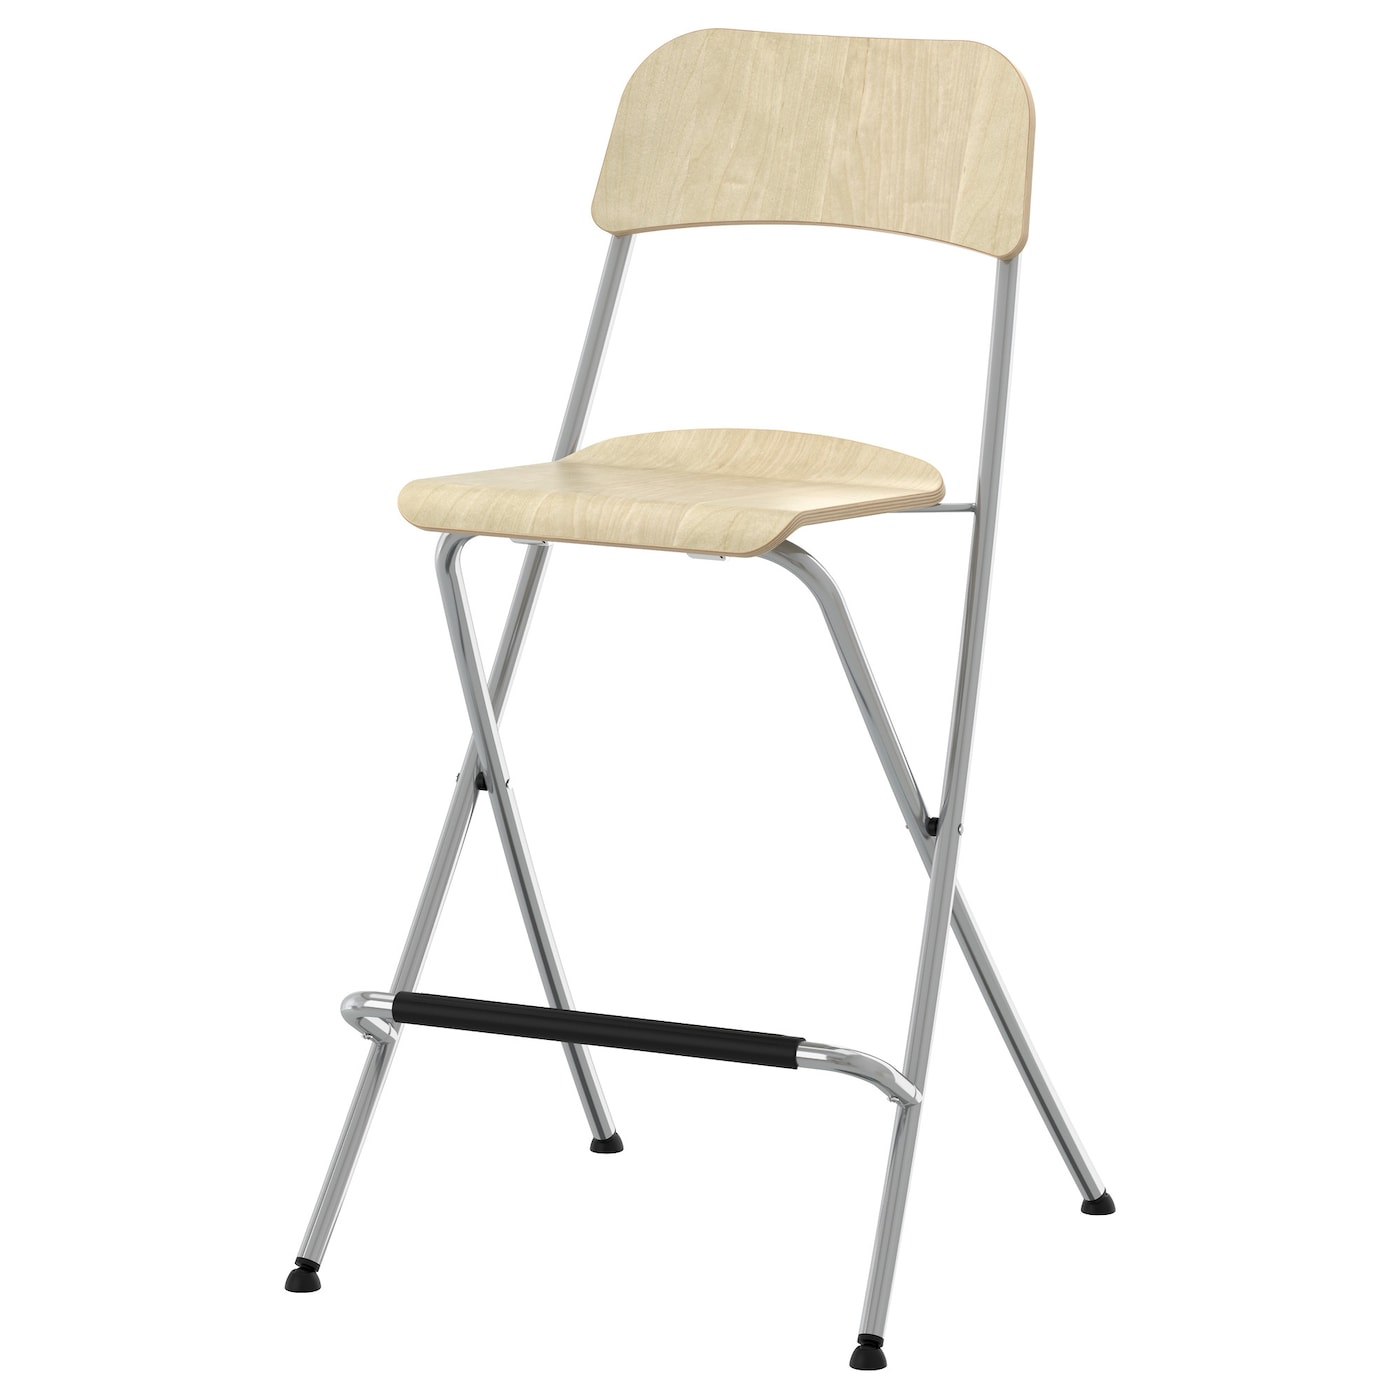 Awesome IKEA FRANKLIN Bar Stool With Backrest, Foldable With Footrest For Relaxed  Sitting Posture.